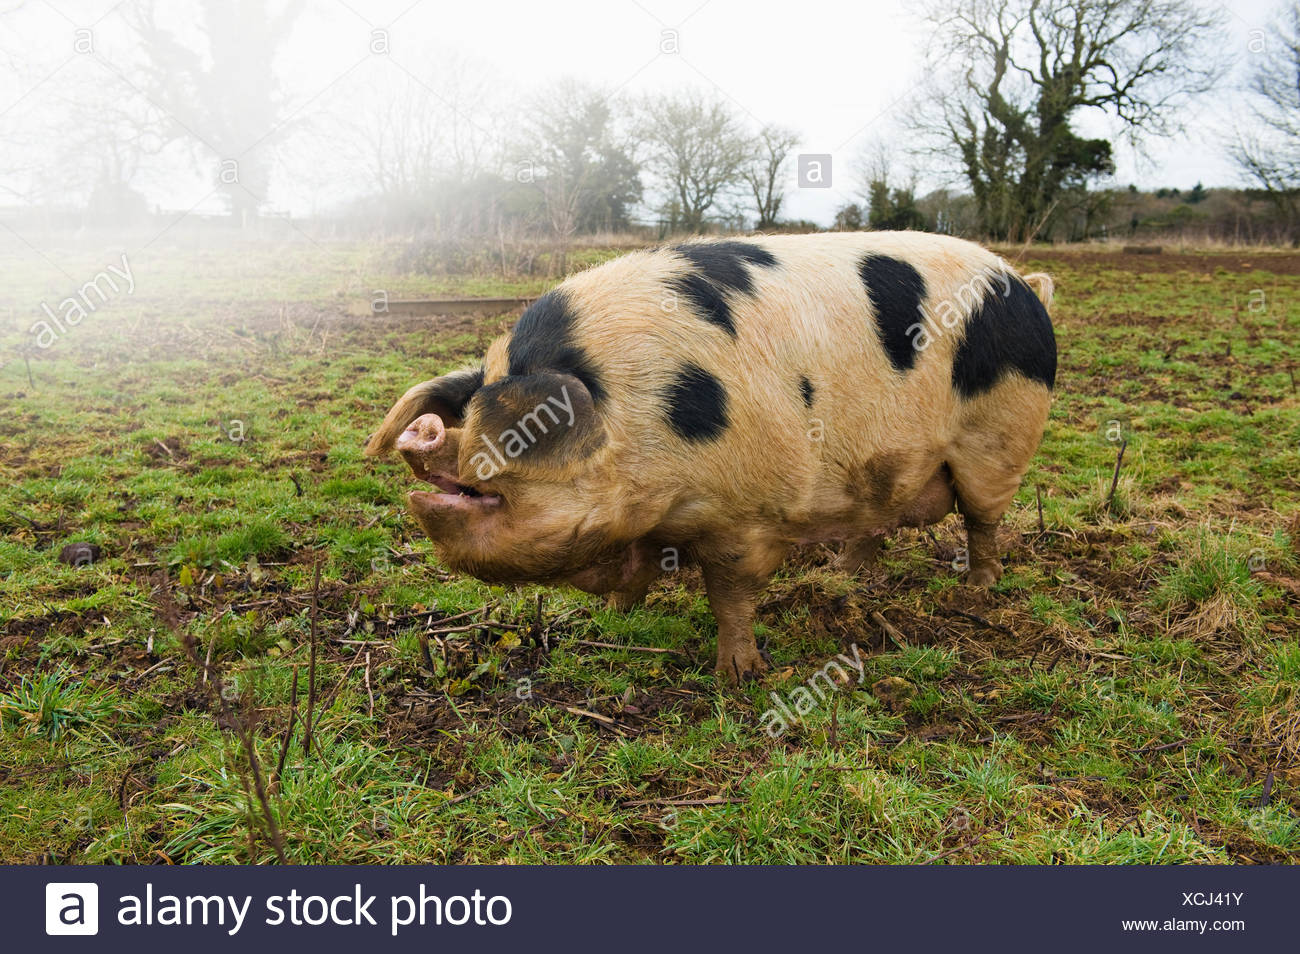 A large adult pig with black markings in an open field. - Stock Image